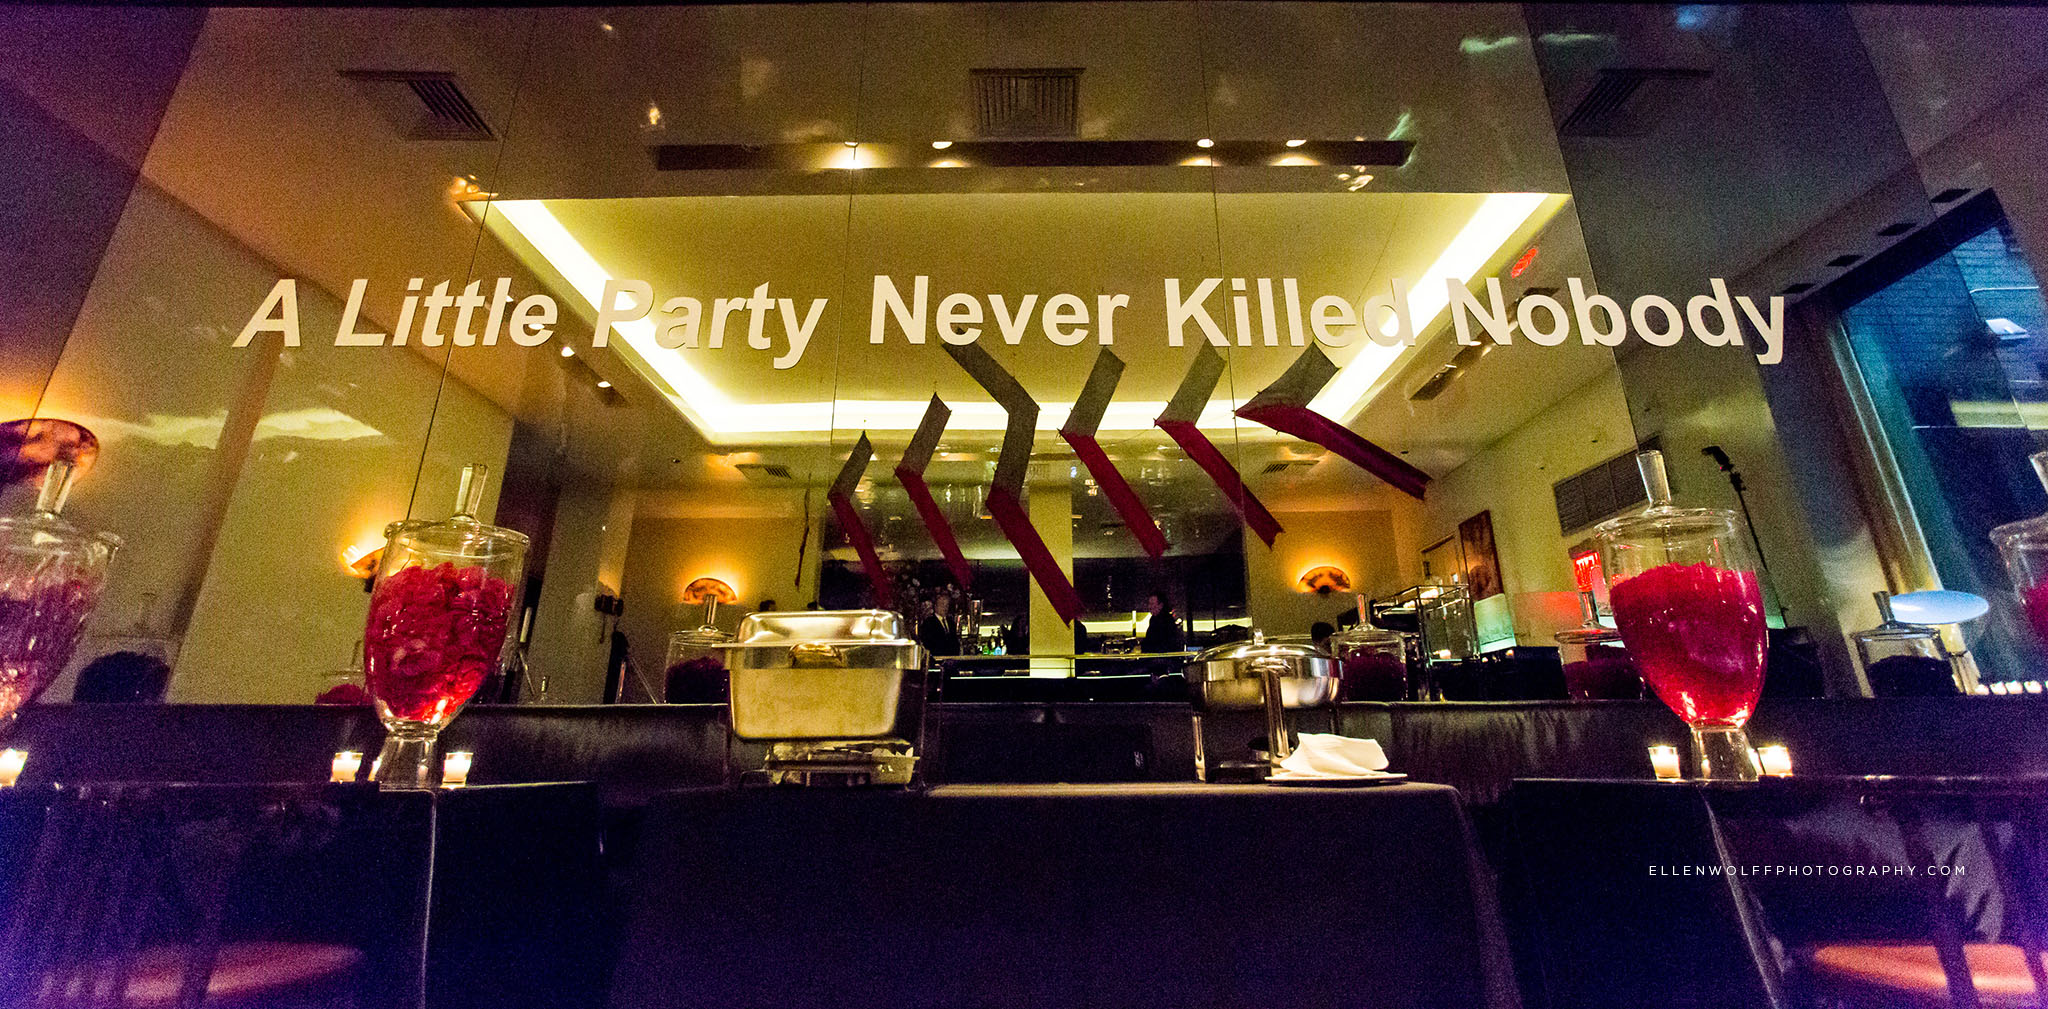 a little party never killed nobody on mirror